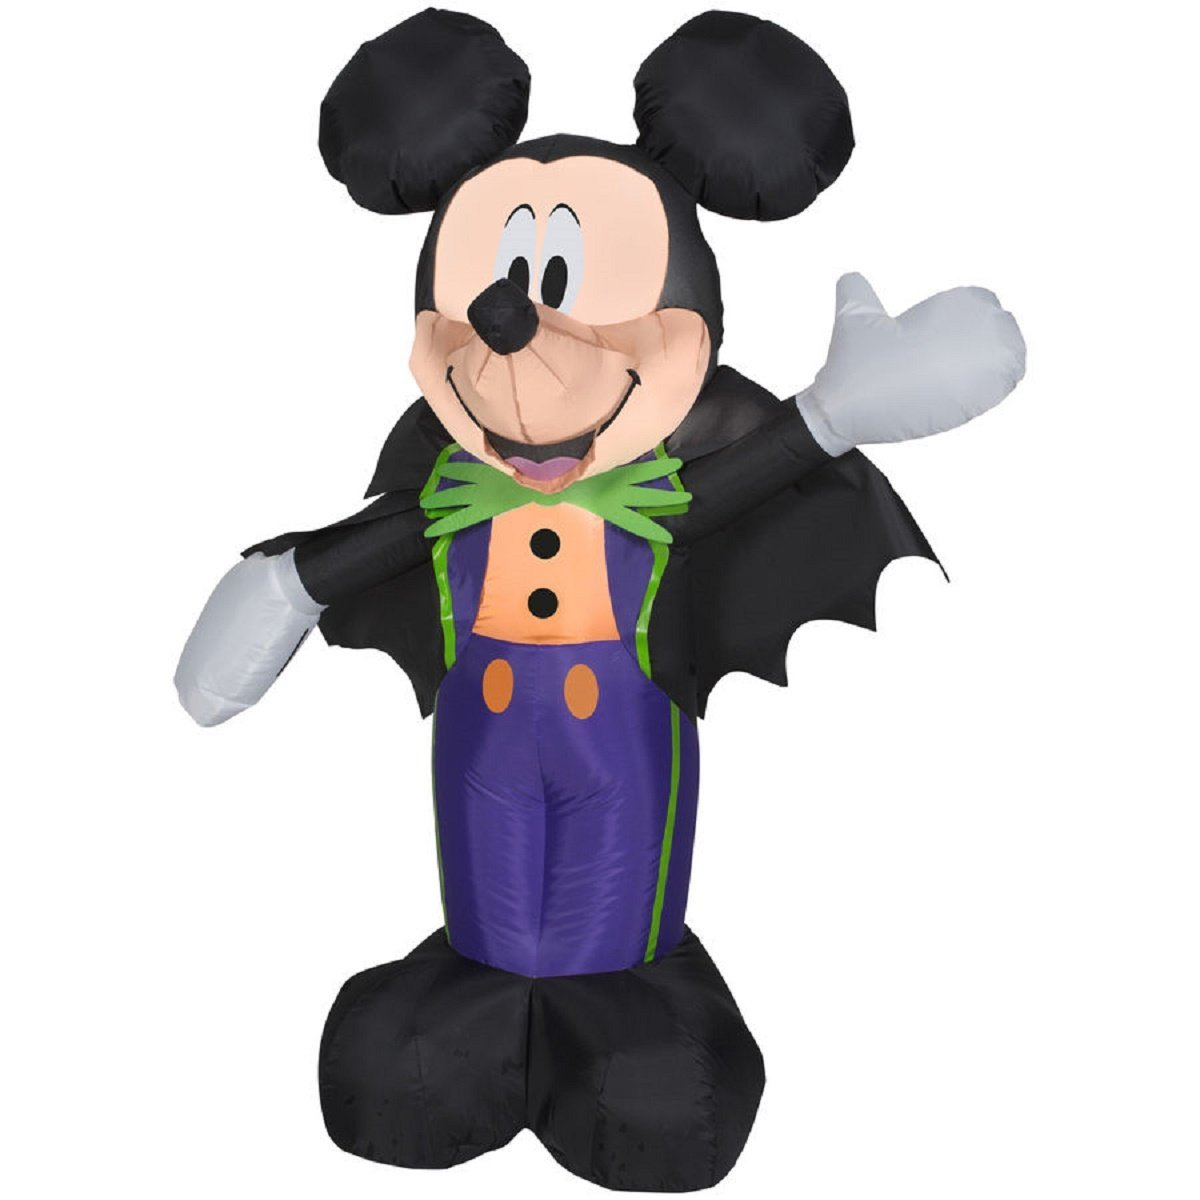 Disney Halloween Decorations For Your Home 4